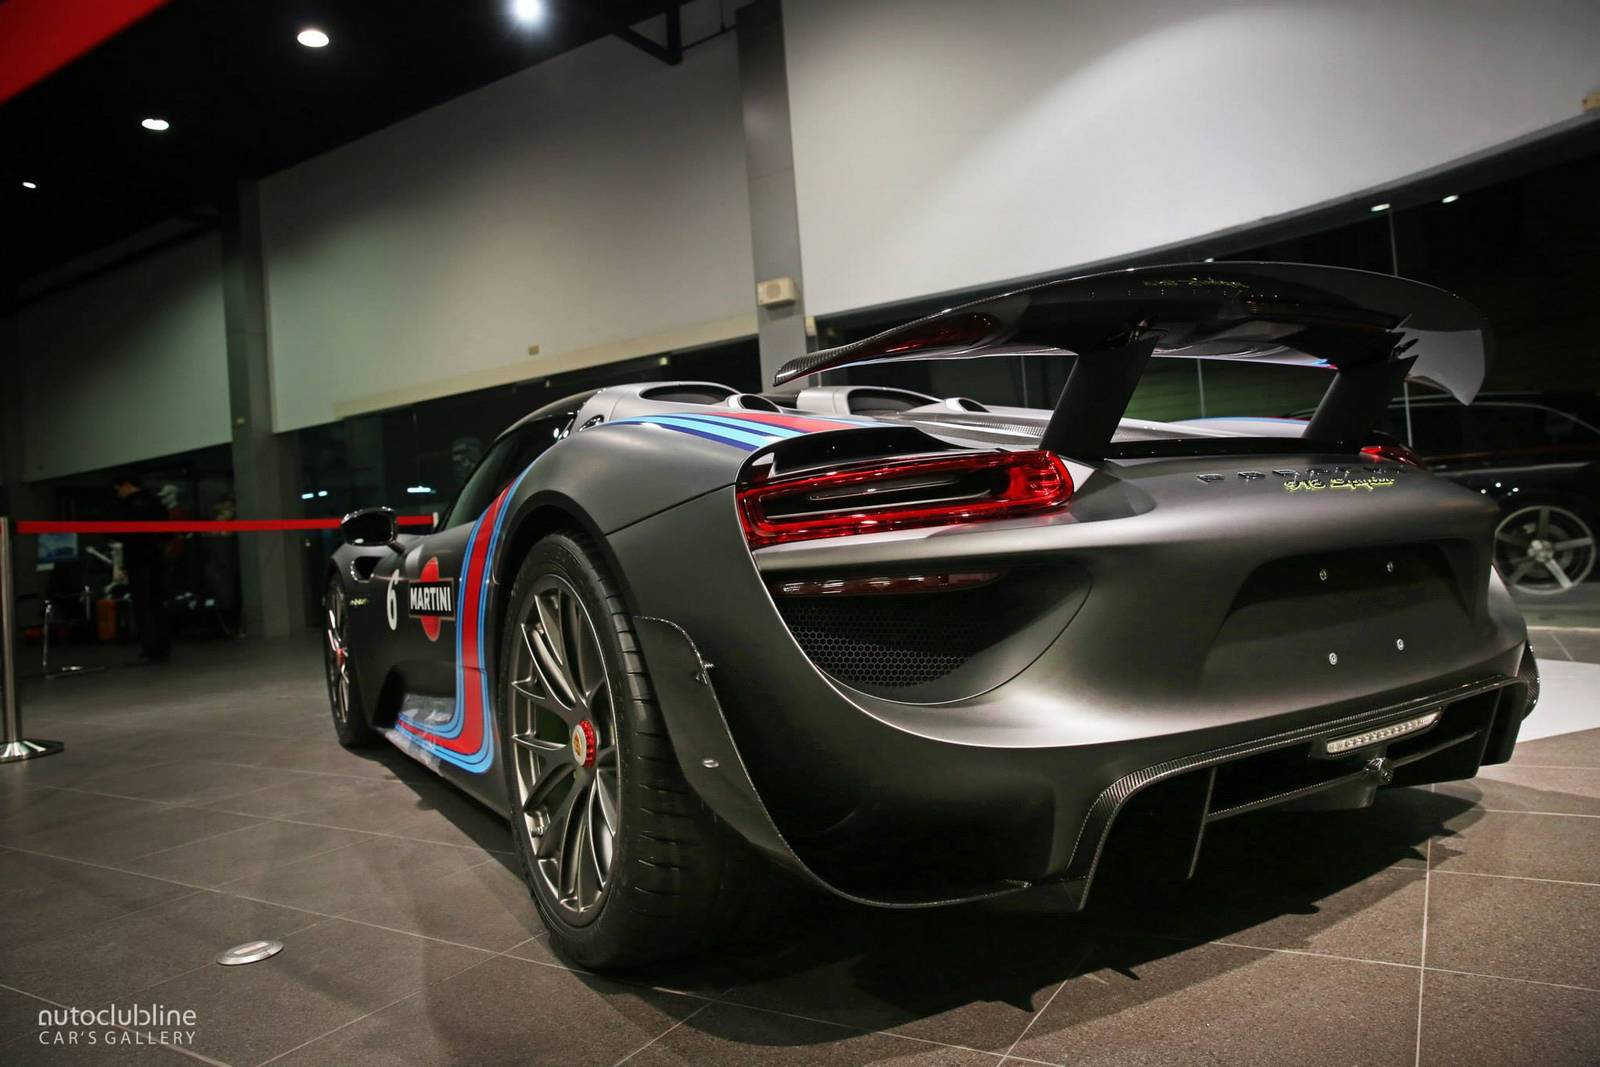 stunning black martini porsche 918 spyder in taiwan gtspirit. Black Bedroom Furniture Sets. Home Design Ideas